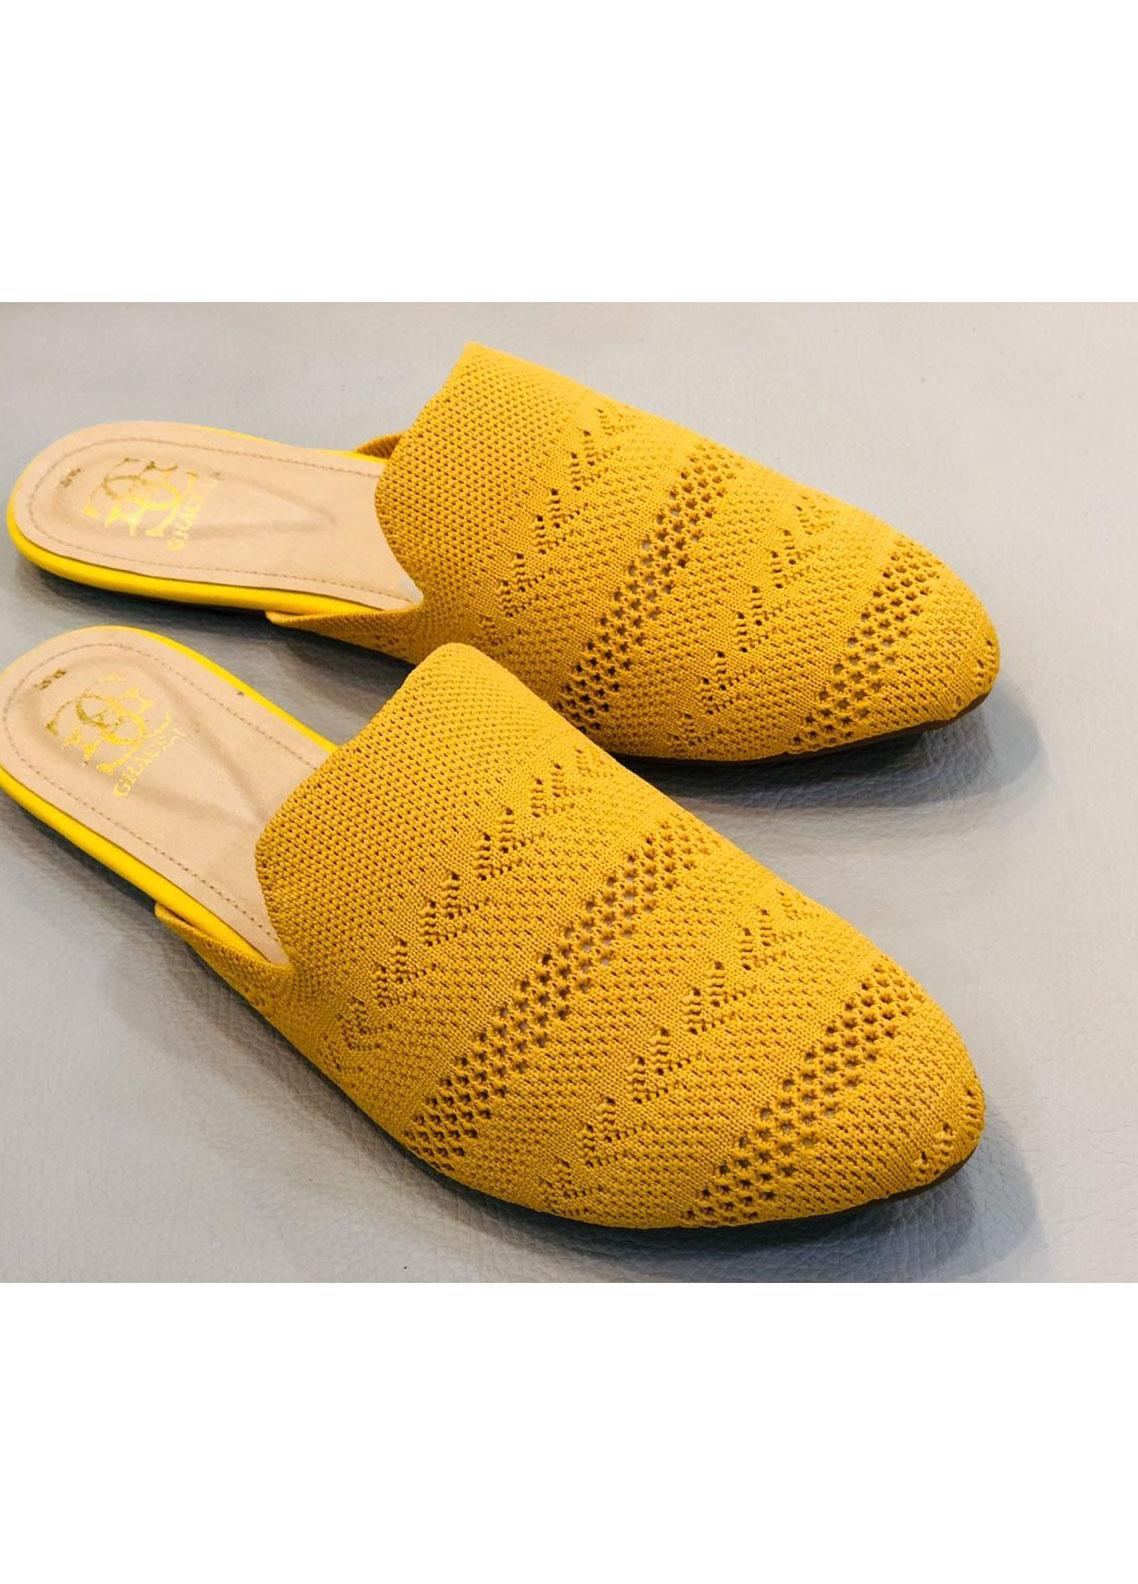 Grace Up Shoes Casual Style  Flat Shoes 682 YELLOW